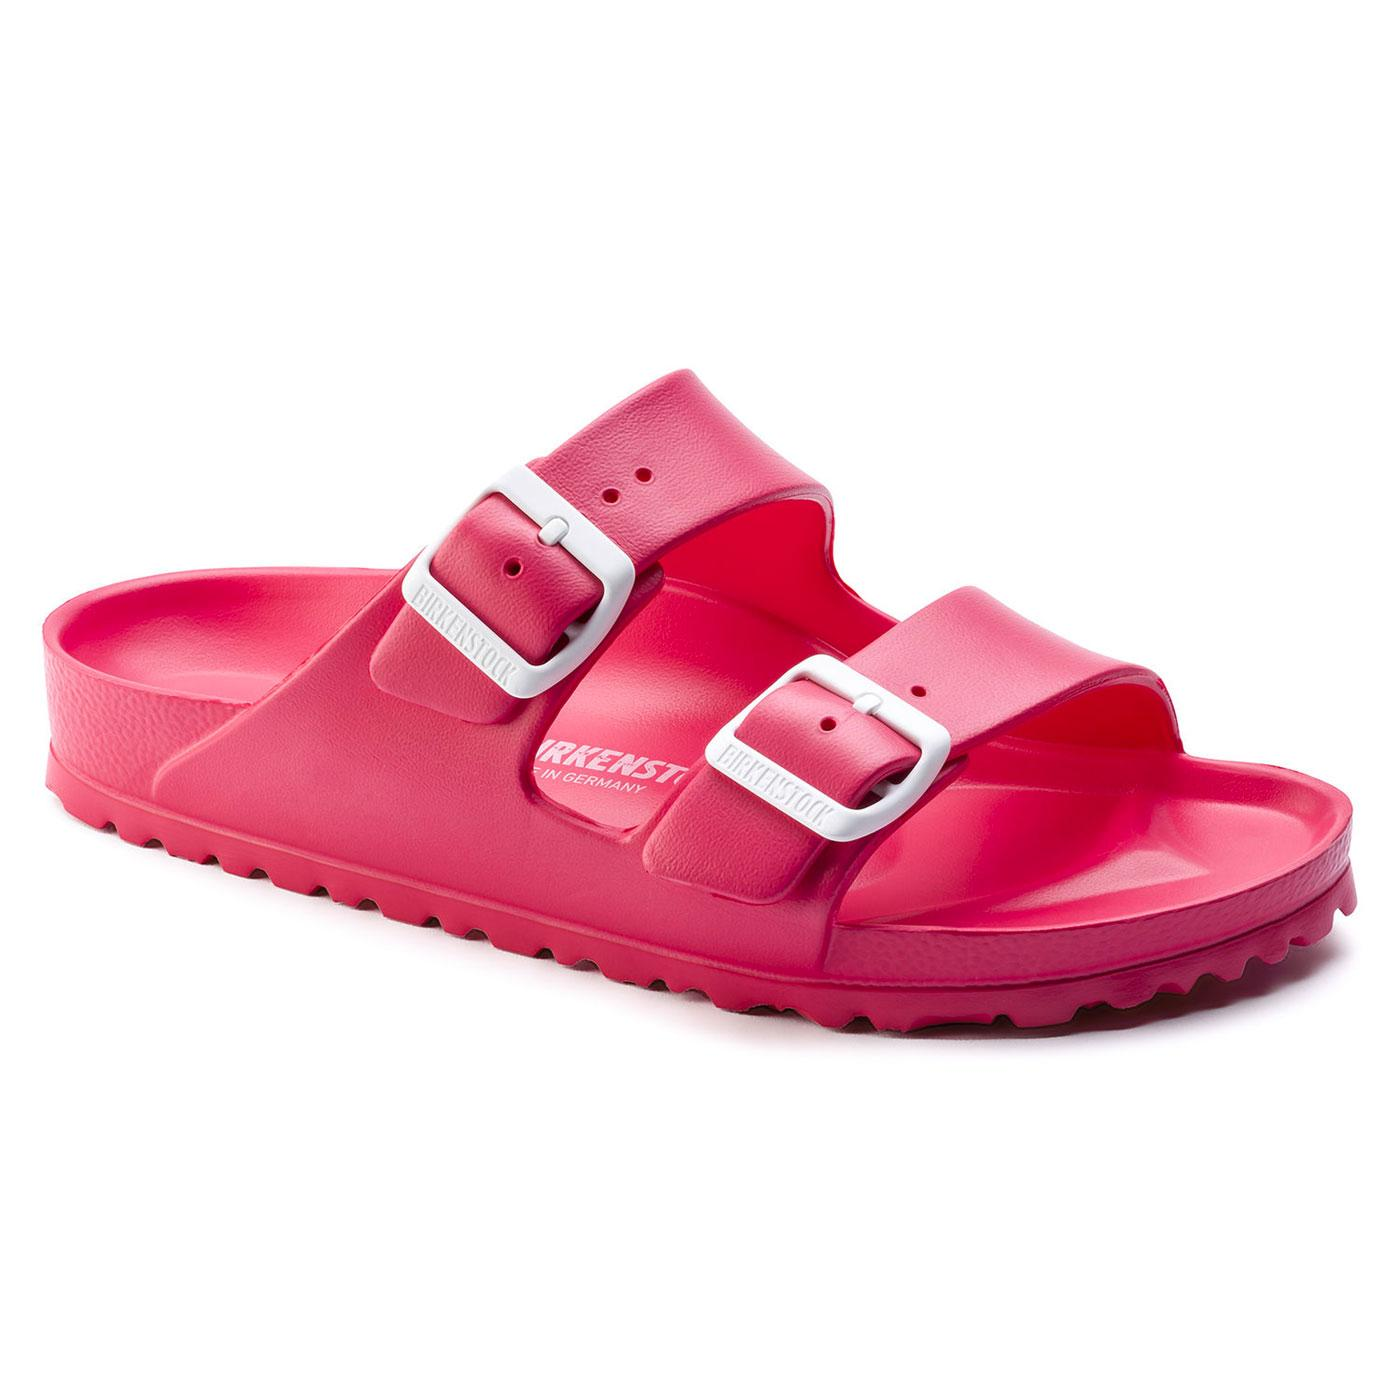 Arizona EVA BIRKENSTOCK Waterproof Retro Sandals C